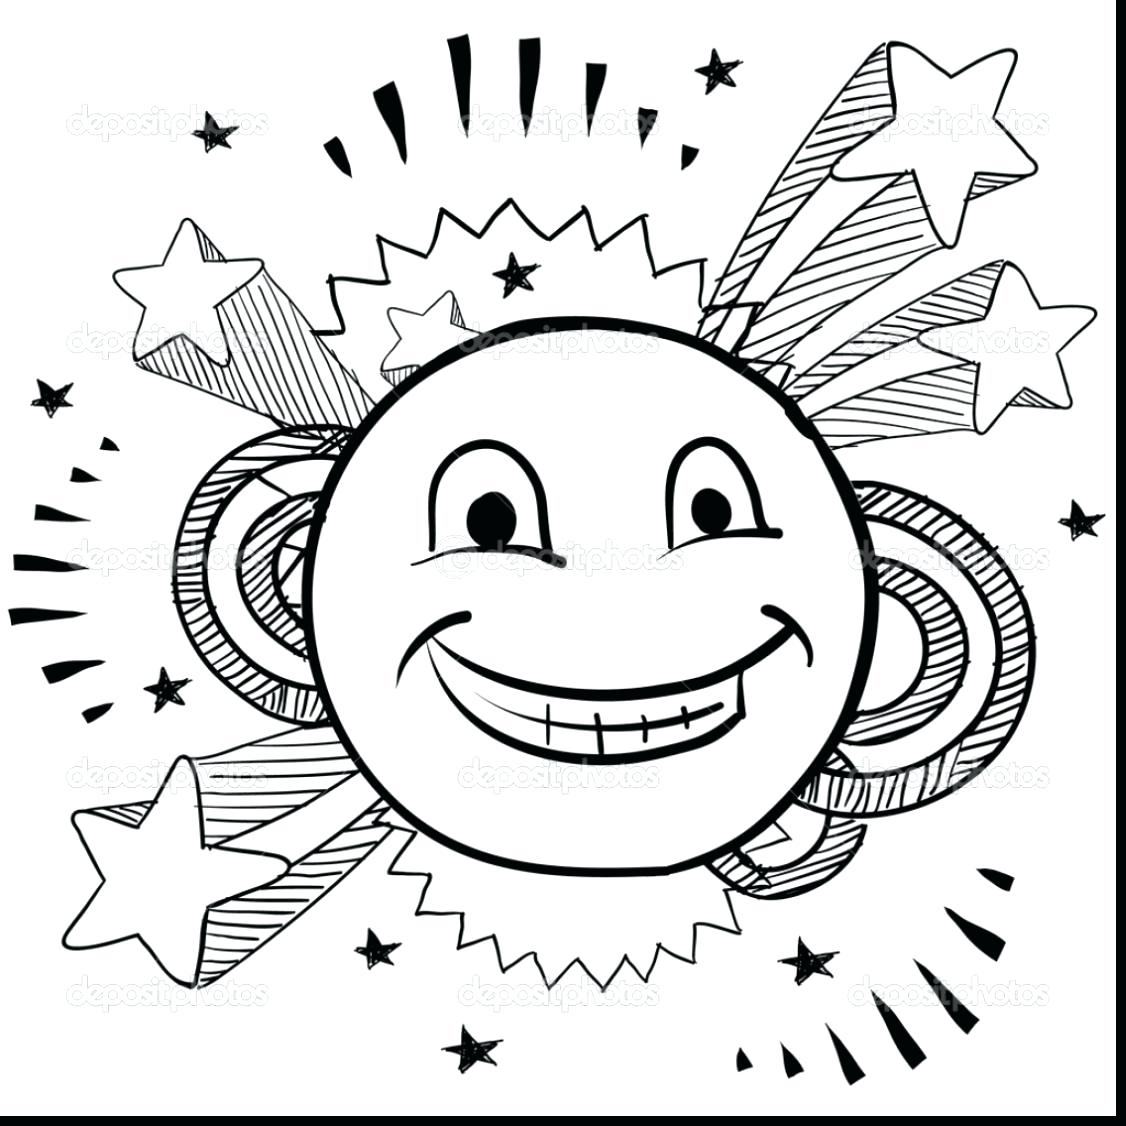 Emoji Faces Coloring Pages At Getcolorings